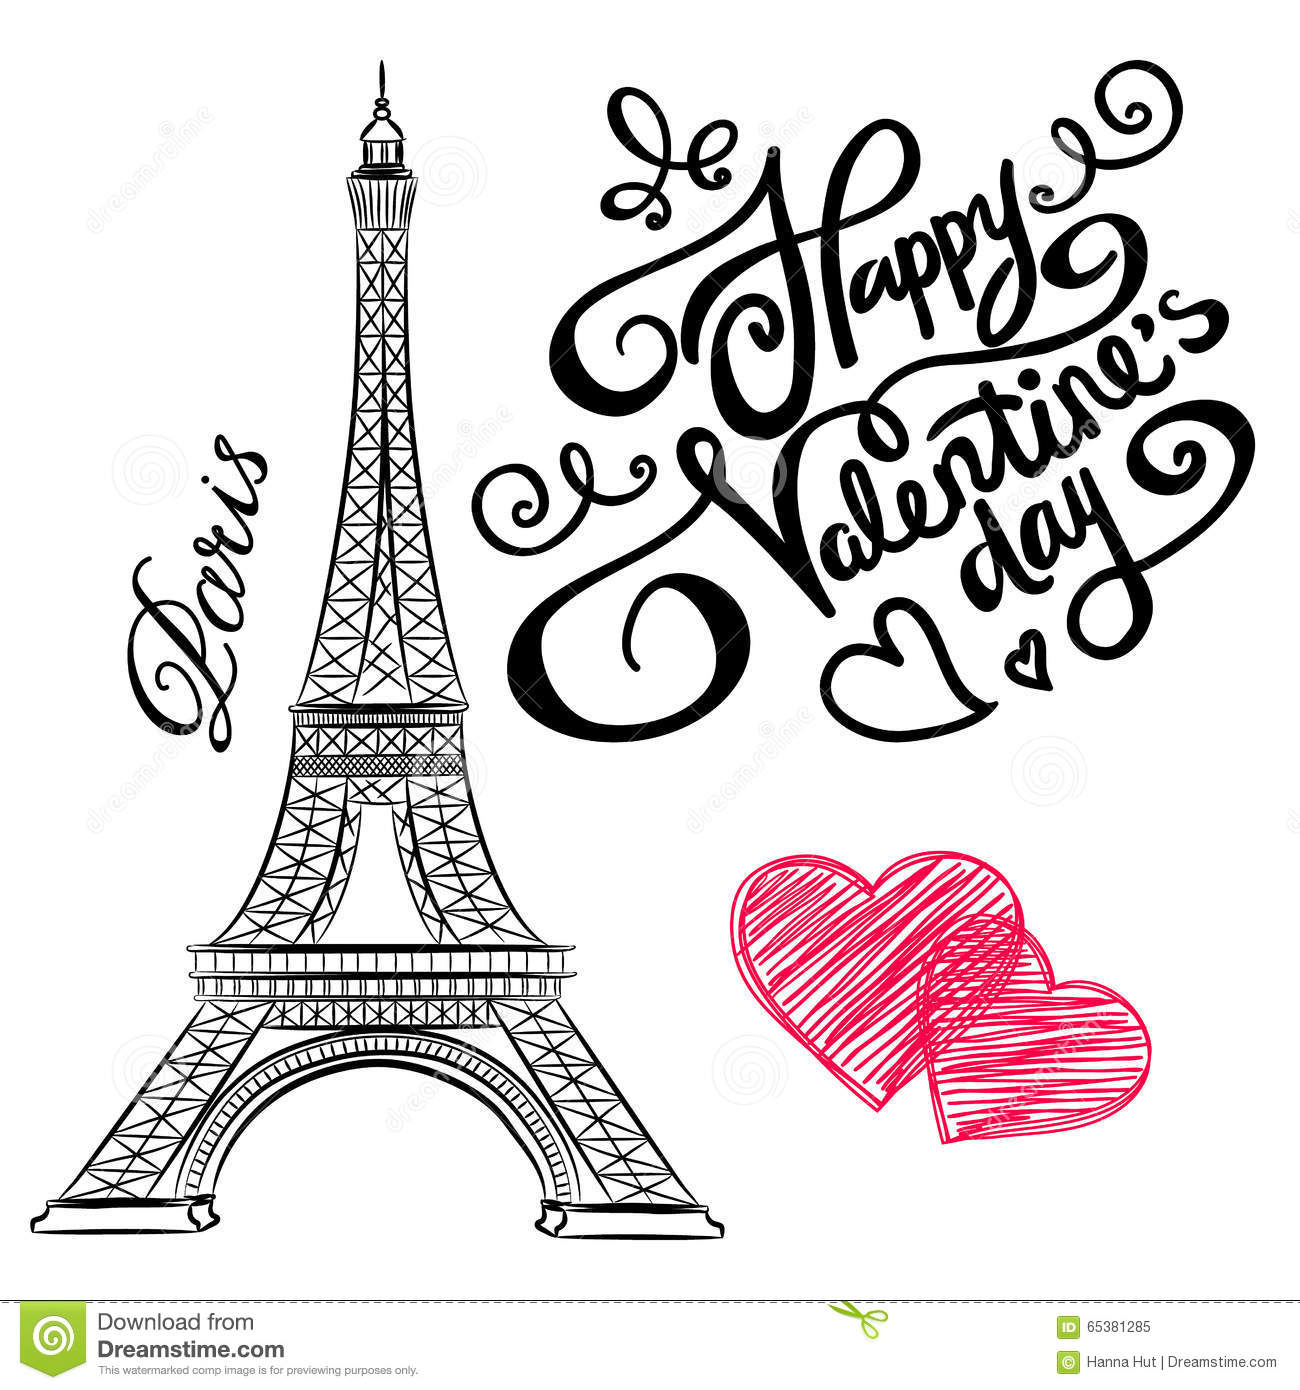 Paris Illustration: Sketch Of Paris, Eiffel Tower With Hearts Stock Vector